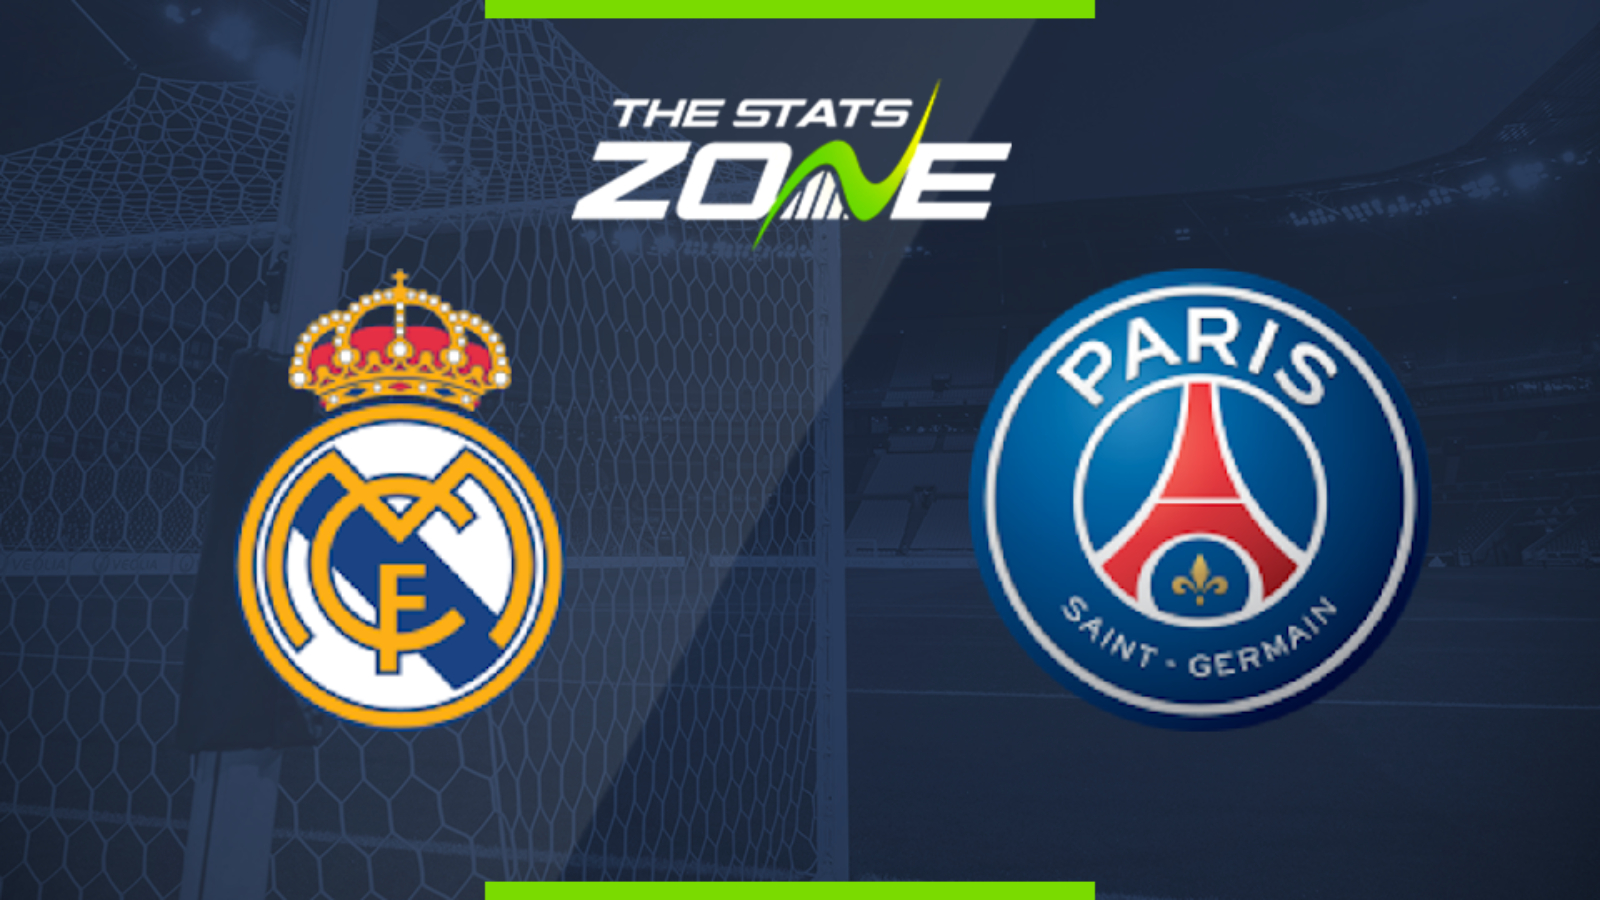 Real Madrid Vs Psg Live